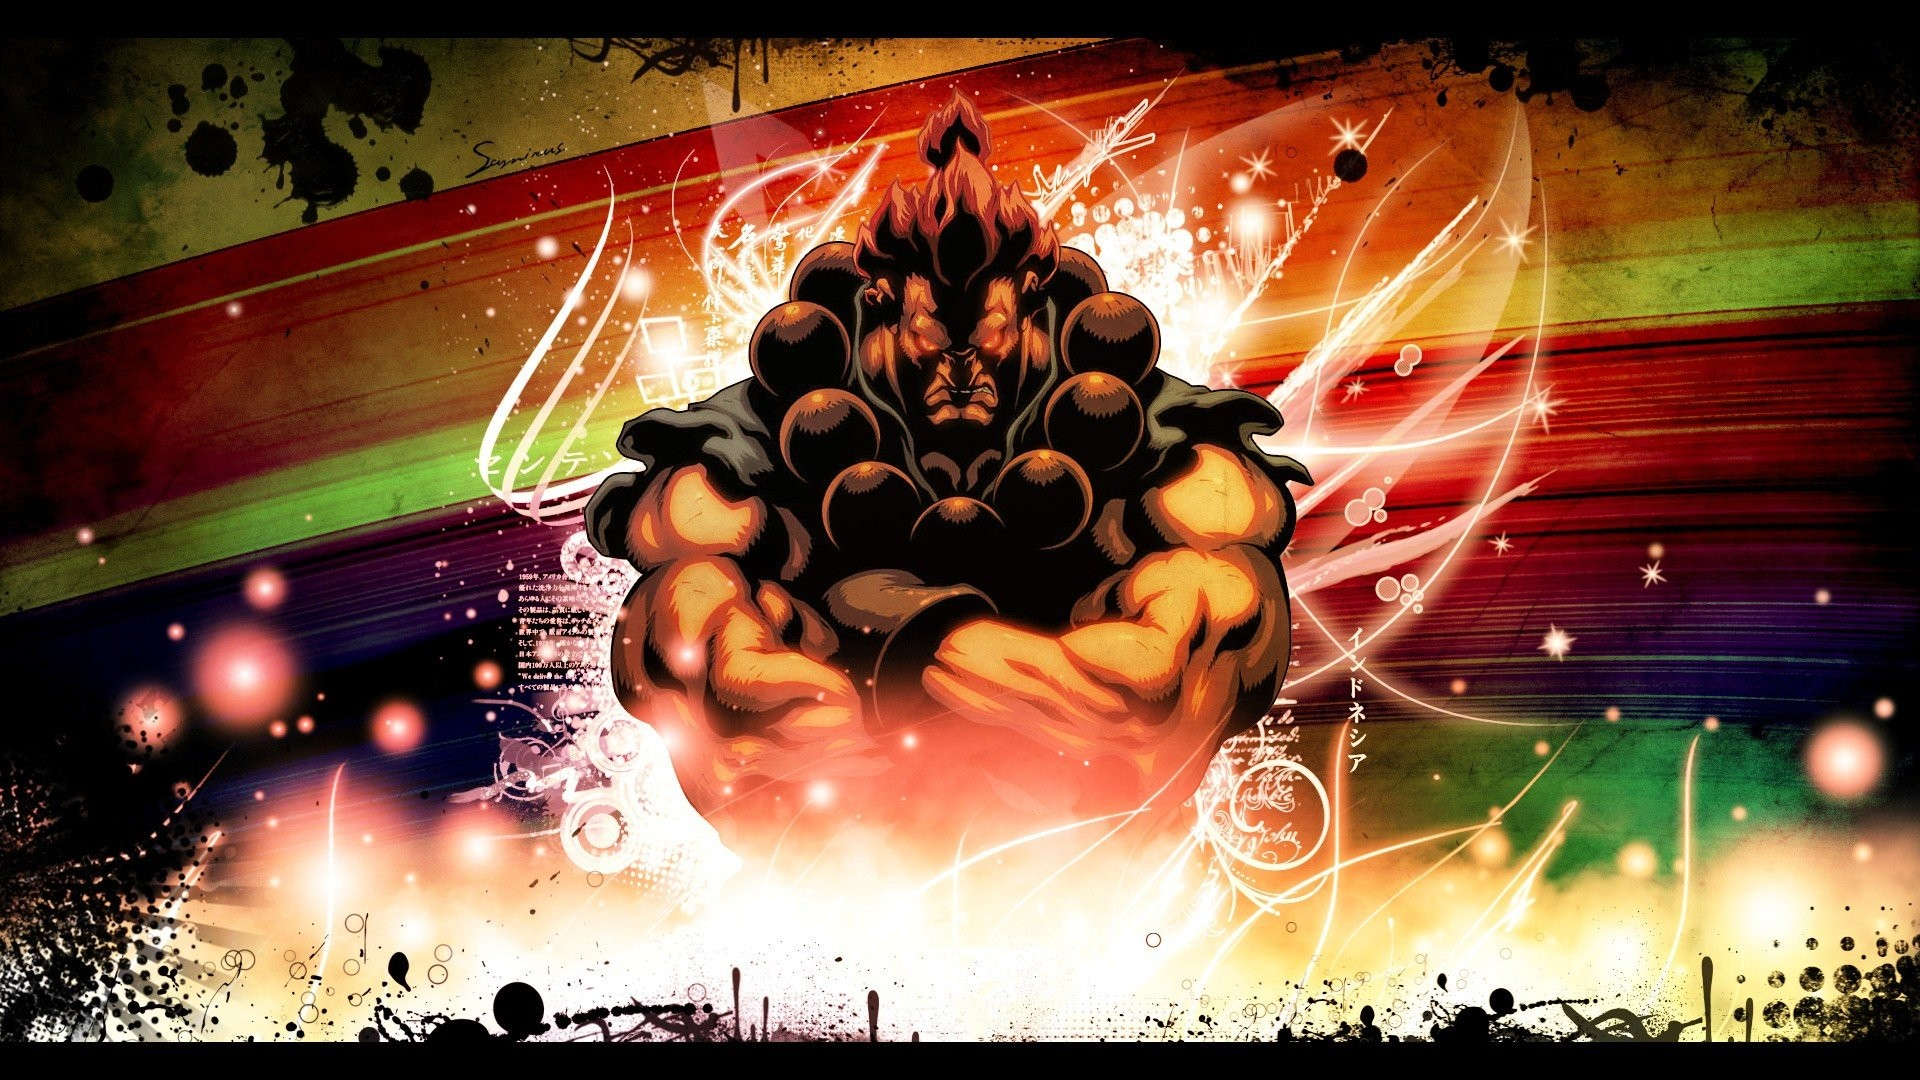 1920x1080 akuma street fighter background hd hd wallpapers desktop images free  windows wallpapers colourful 4k picture artwork lovely 1920×1080 Wallpaper  HD